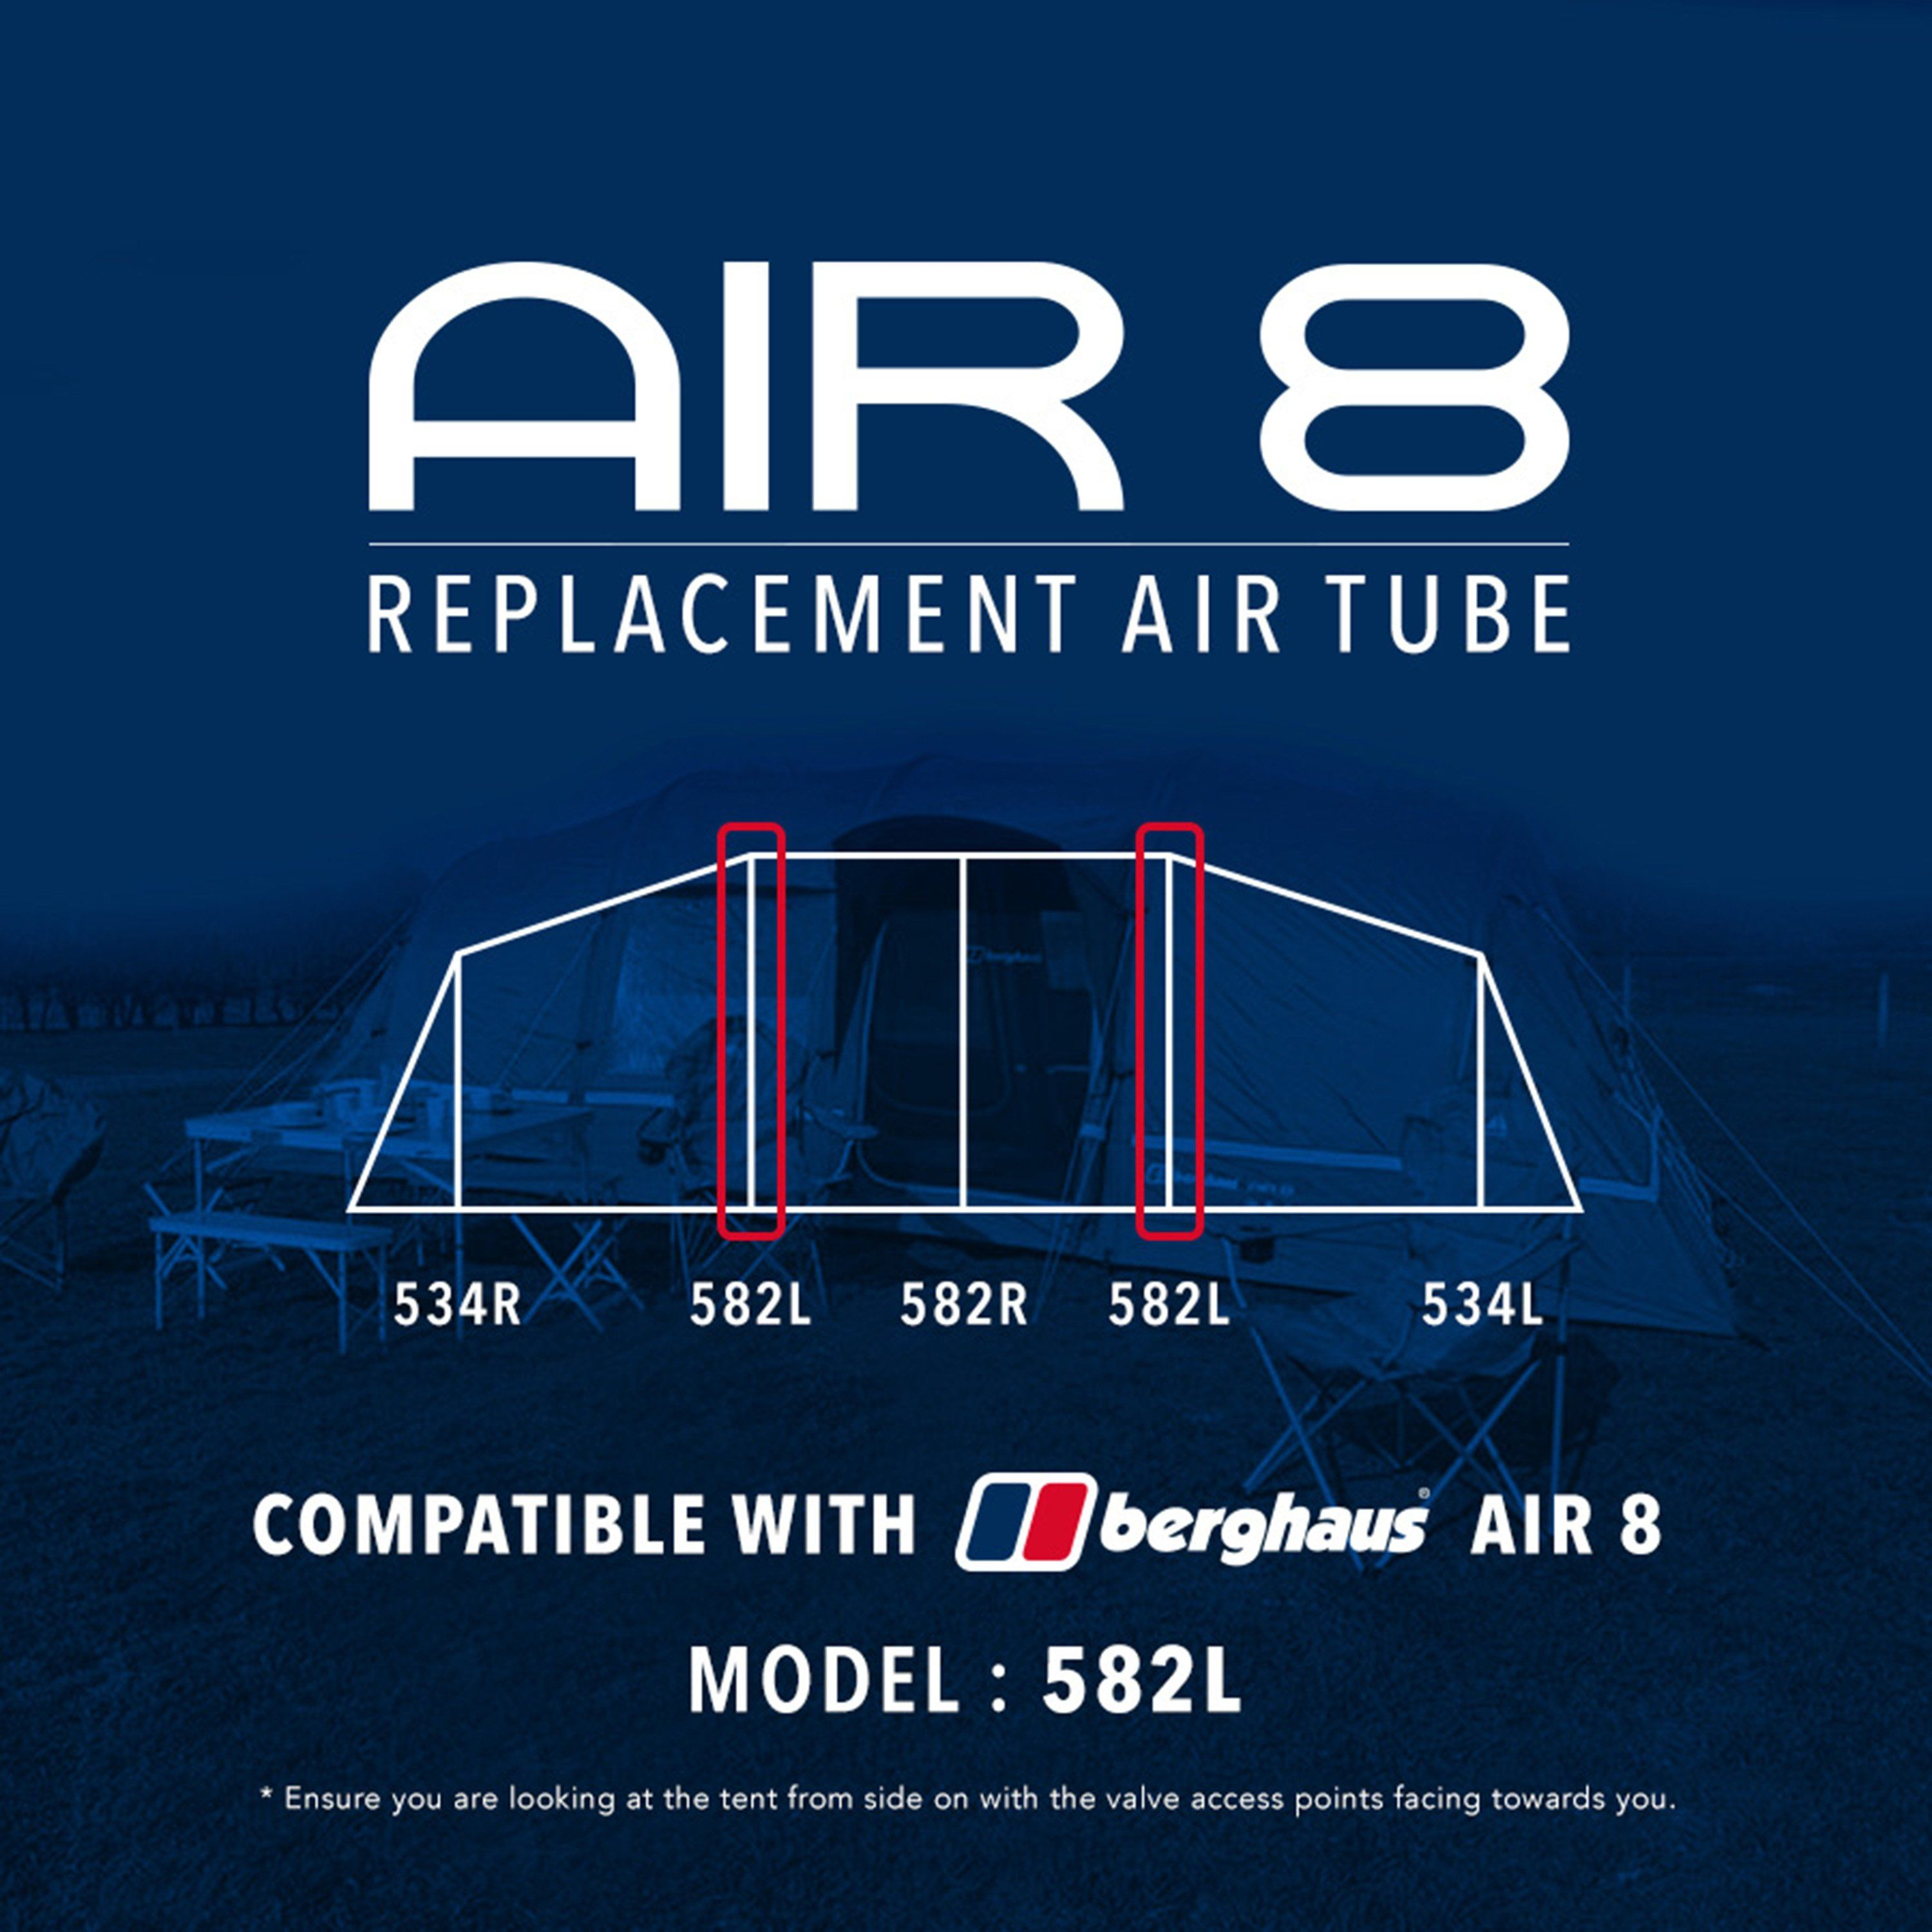 EUROHIKE Air 8 Tent Replacement Air Tube - 582L